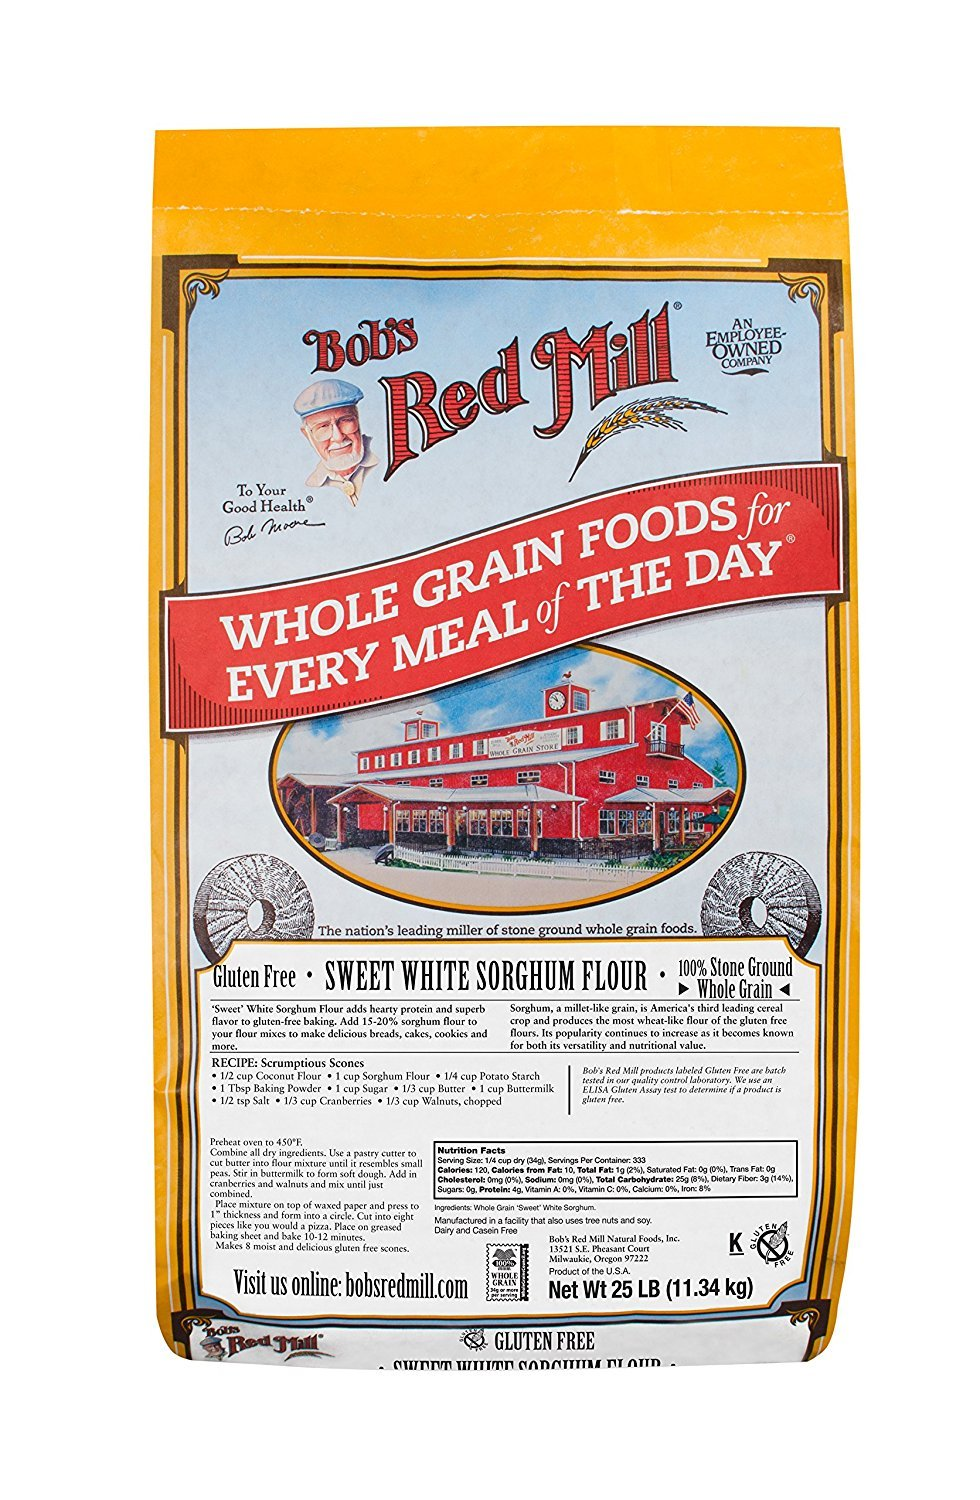 Bob's Red Mill Bulk Sweet Sorghum Flour, Gluten Free, 25 Pound by Bob's Red Mill